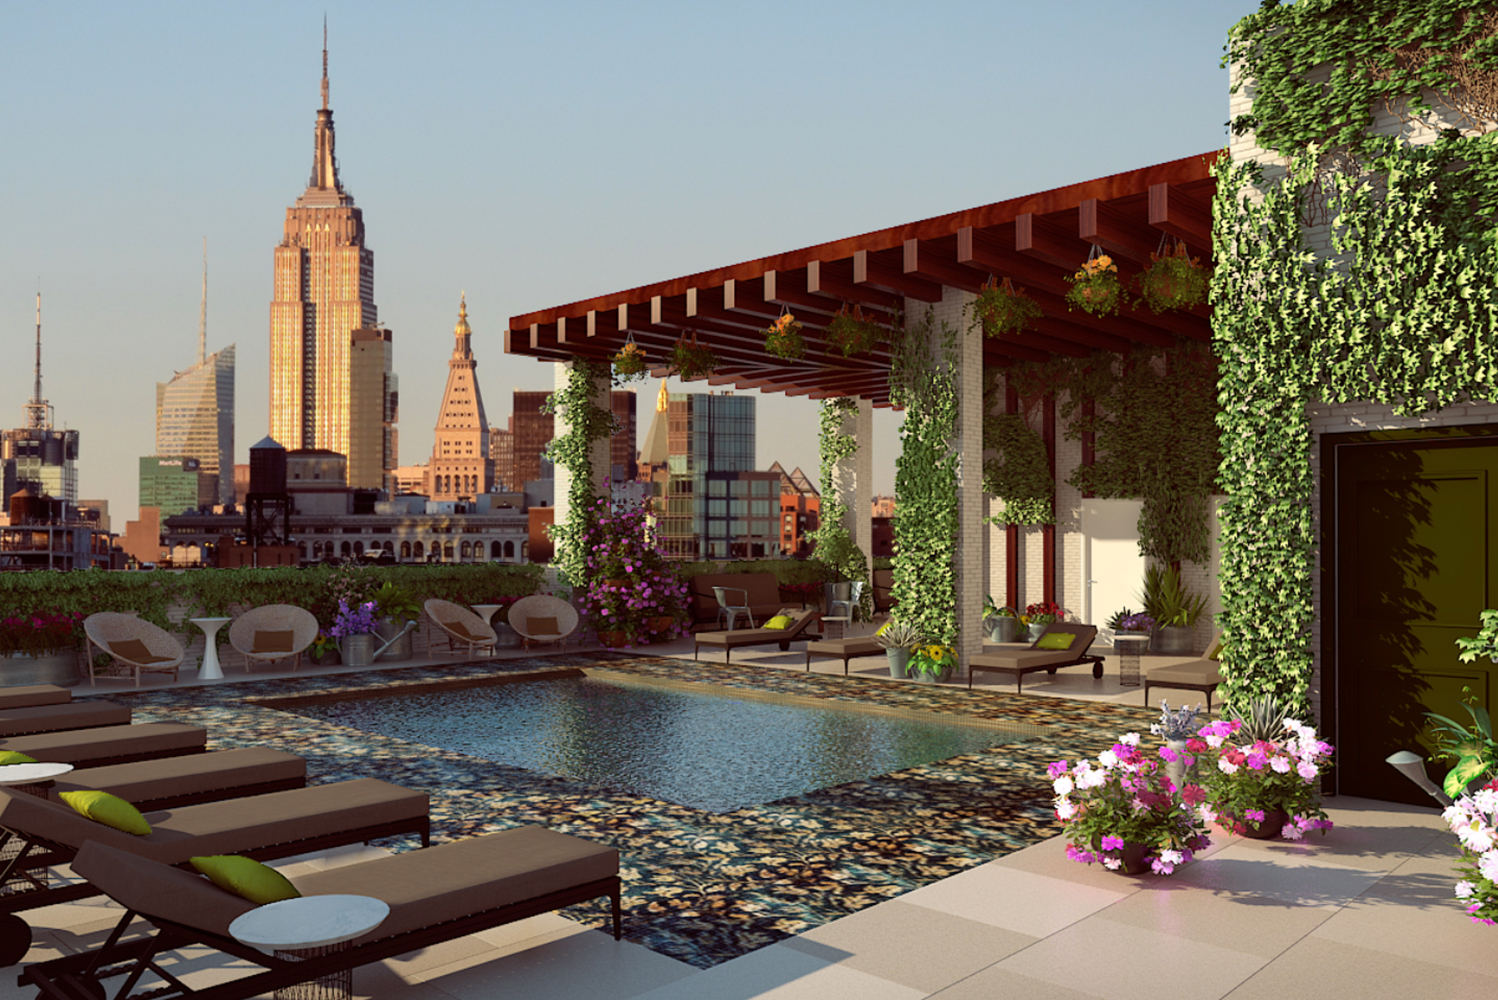 Renaissance New York Chelsea Hotel is scheduled to open a new restaurant this Fall 2019.